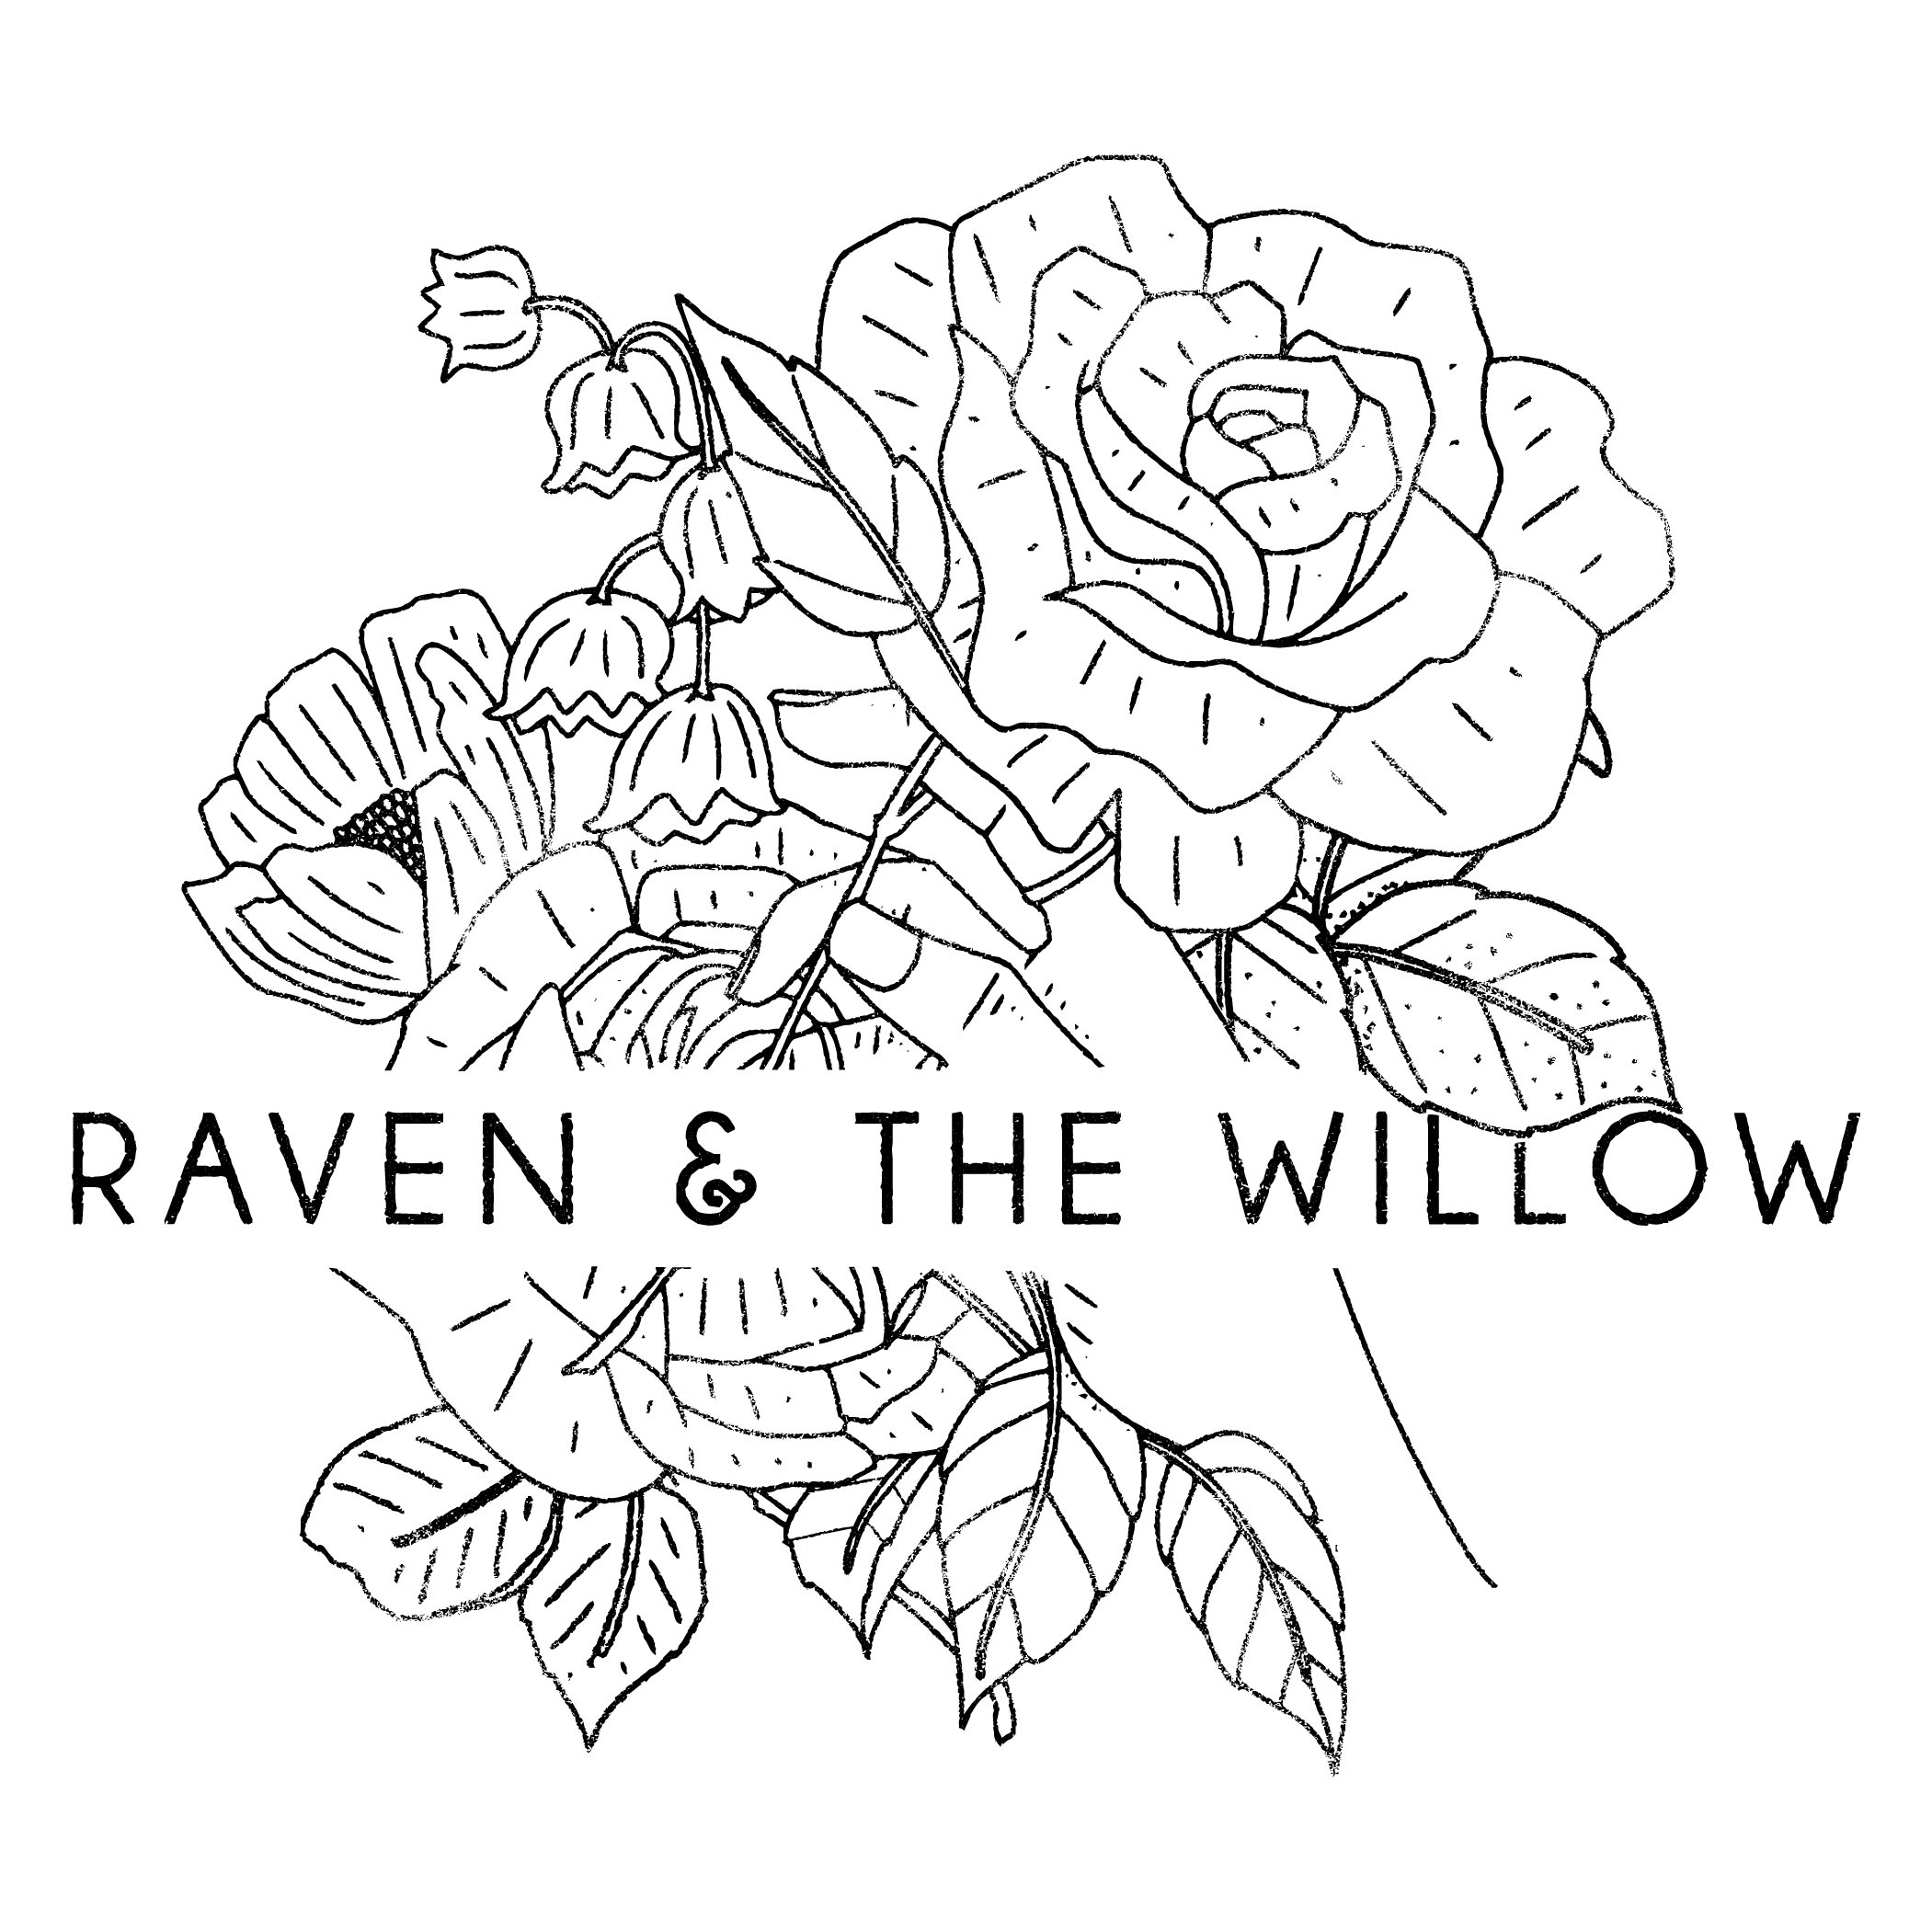 Willow drawing design. Wedding elopement photography raven